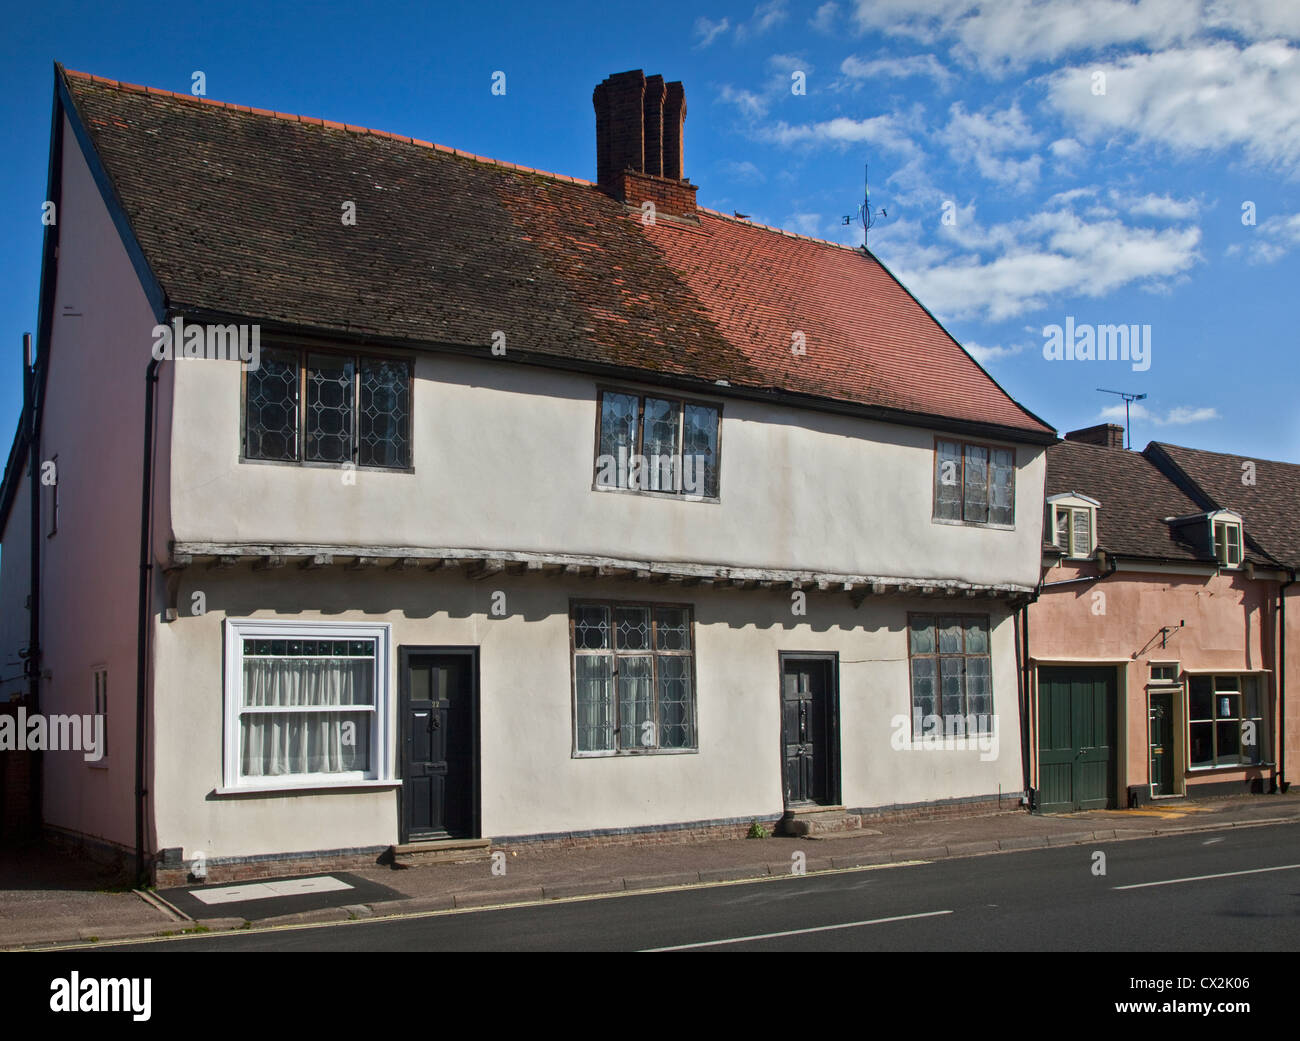 Street in the Village of Ixworth, Suffolk, England - Stock Image